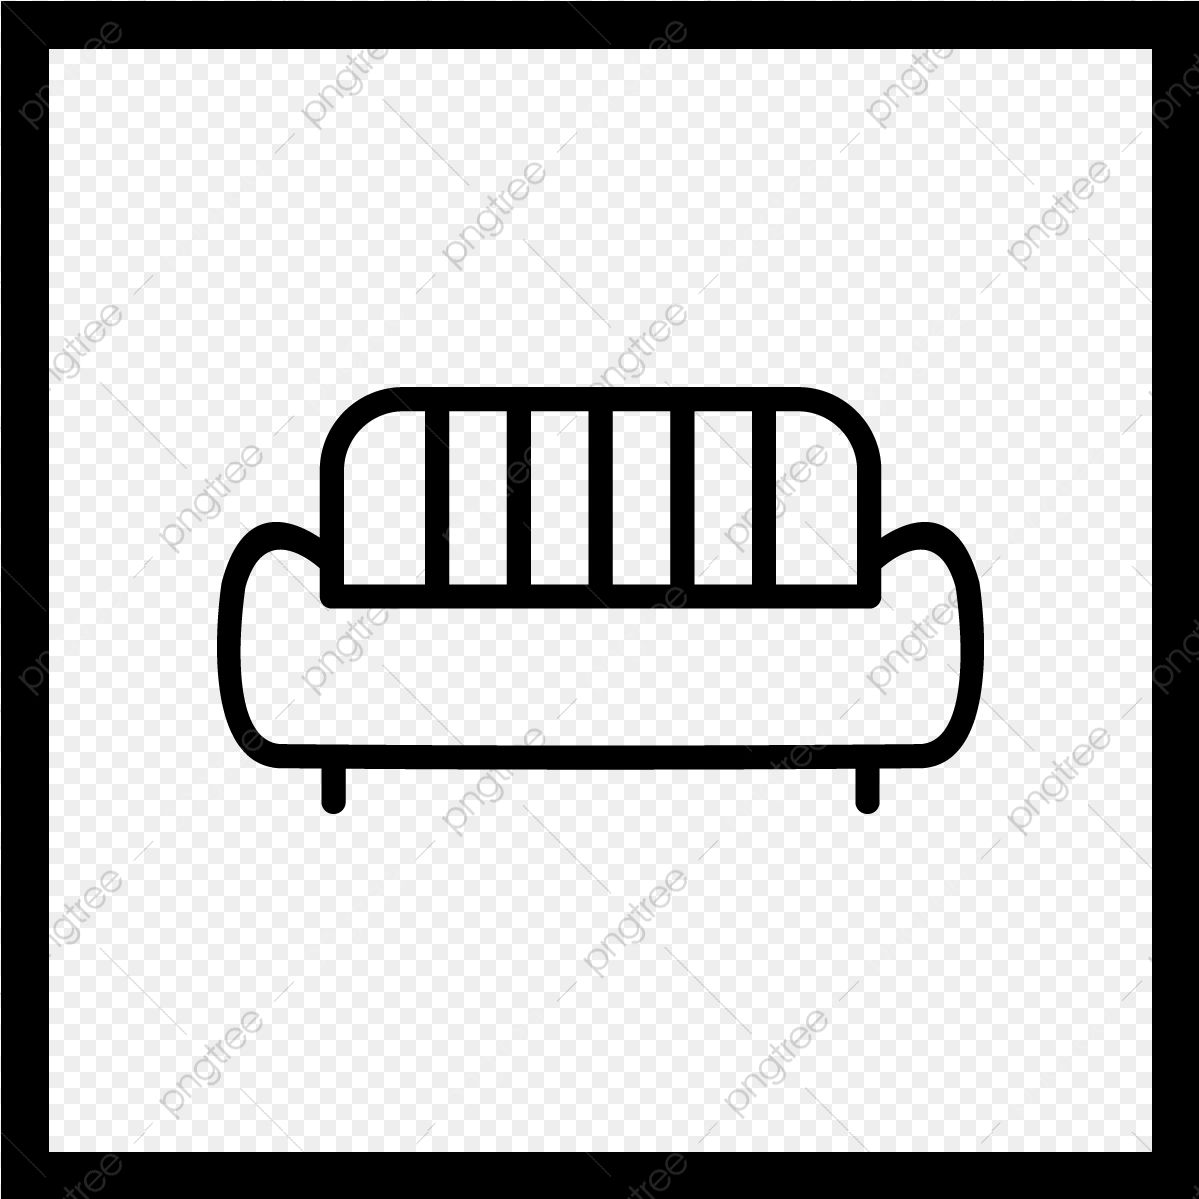 Vector Sofa Icon Sofa Icons Sofa Living Room Png And Vector With Transparent Background For Free Download Instagram Logo Icon Location Icon